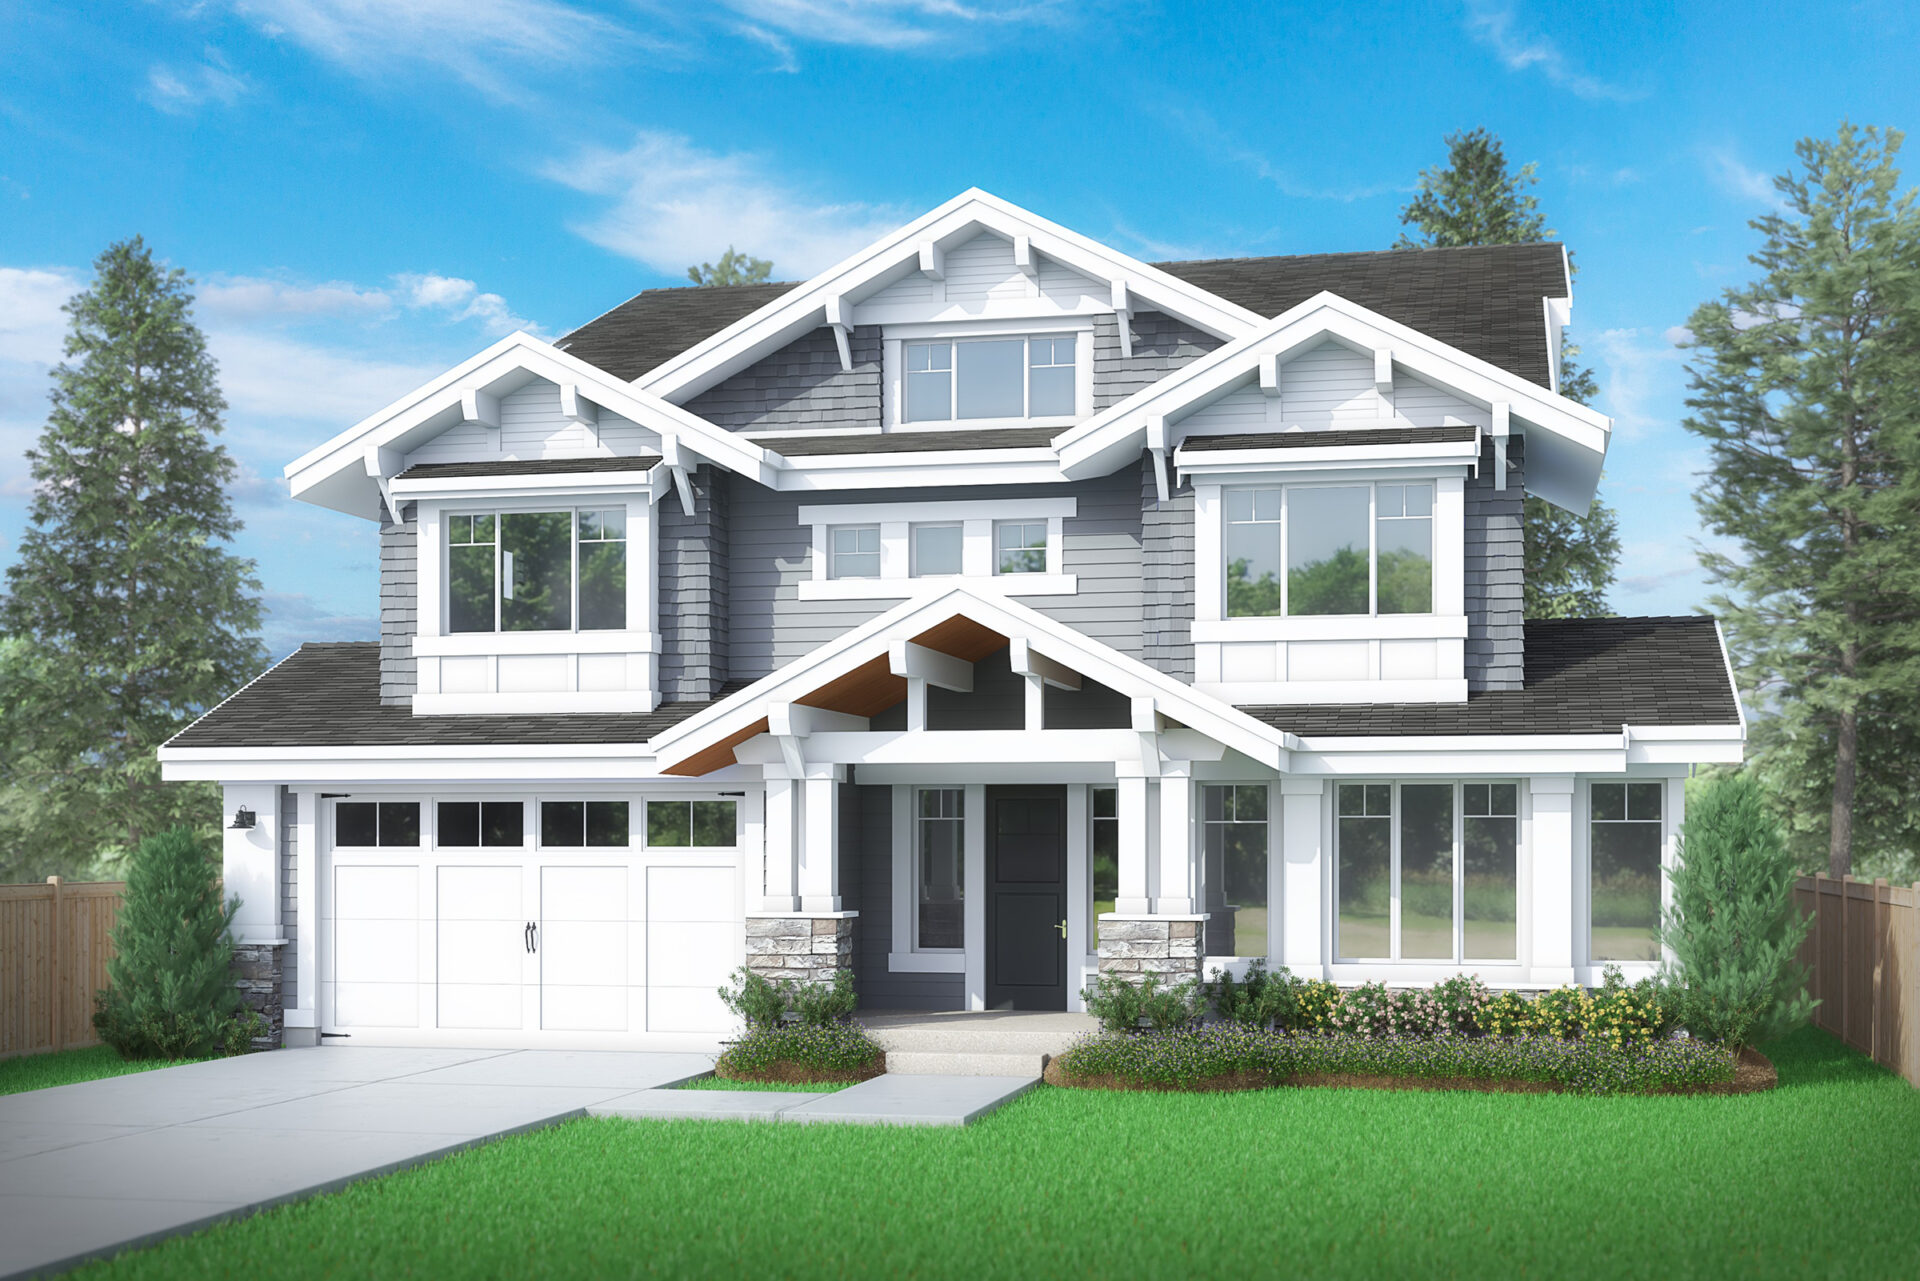 View our new luxury home construction on 10233 NE 23rd St, in Bellevue, WA from MN Custom Homes